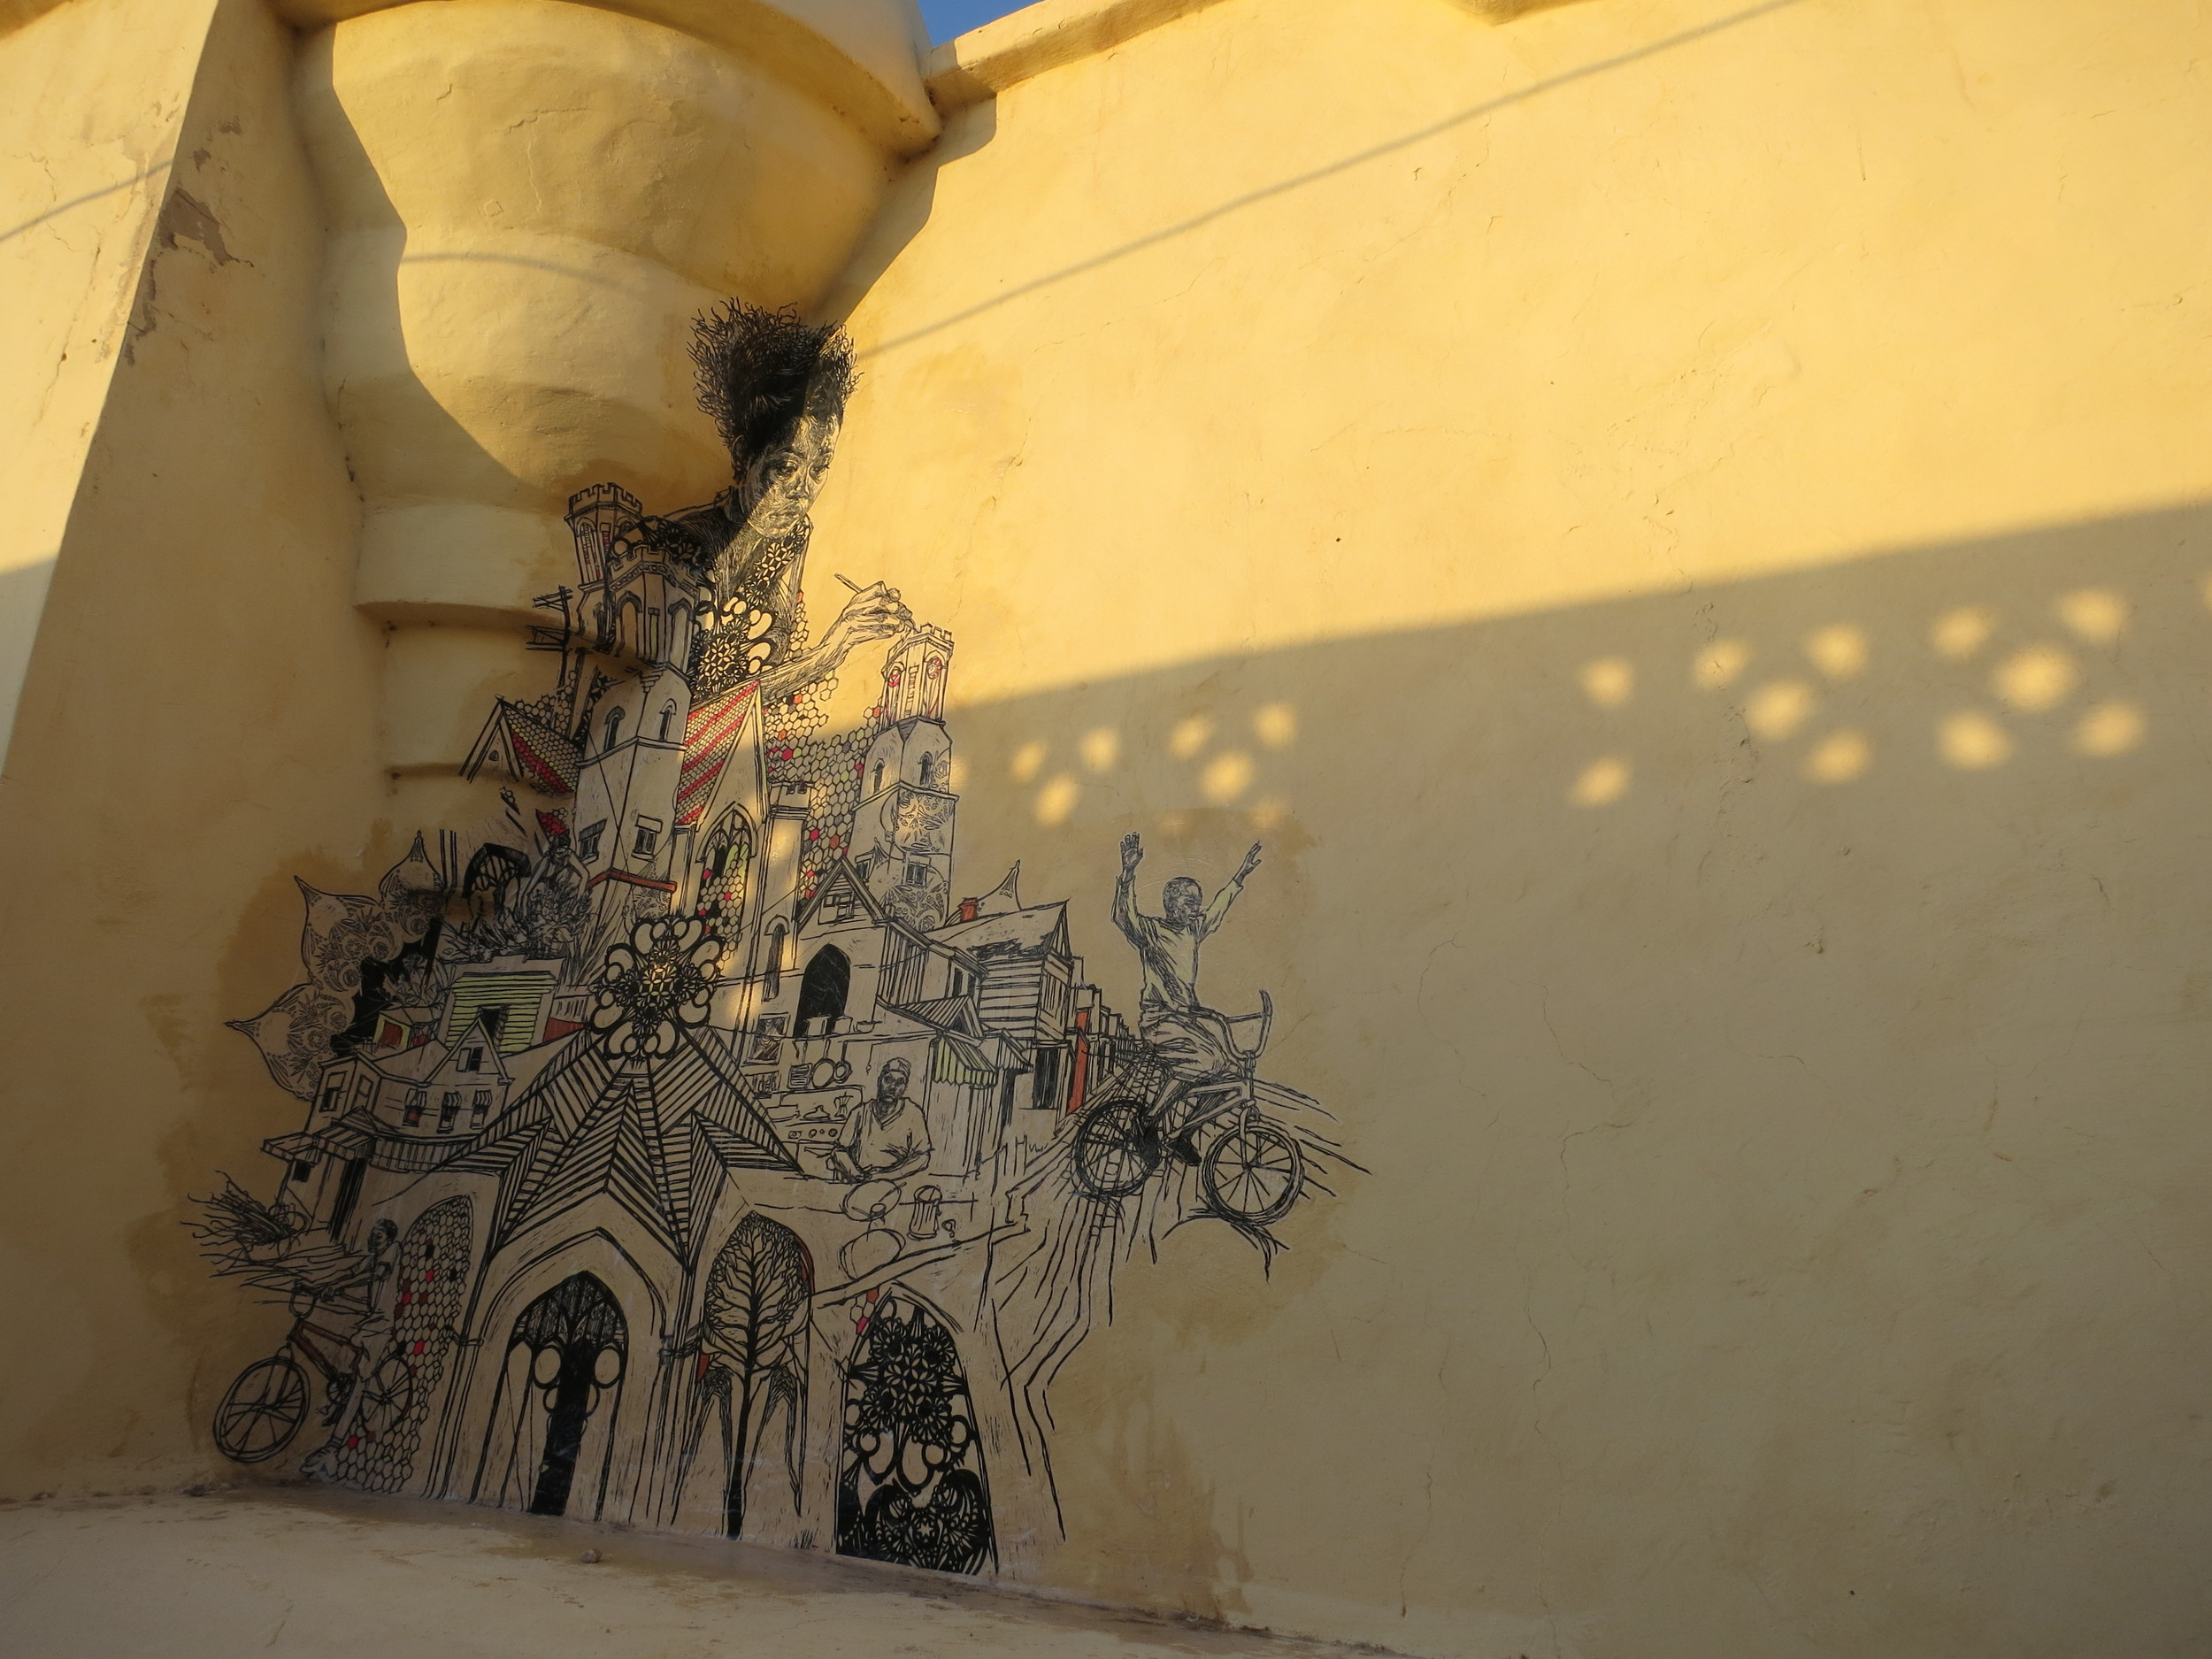 """One of the installations Swoon contributed to the Djerbahood Project (Galerie Itinerrance's """"open-air museum"""" street art project in Tunisia), the 2014 piece is inspired by the Braddock Tiles community arts initiative in Braddock, Pennsylvania. ( Photo : Swoon Studio)"""